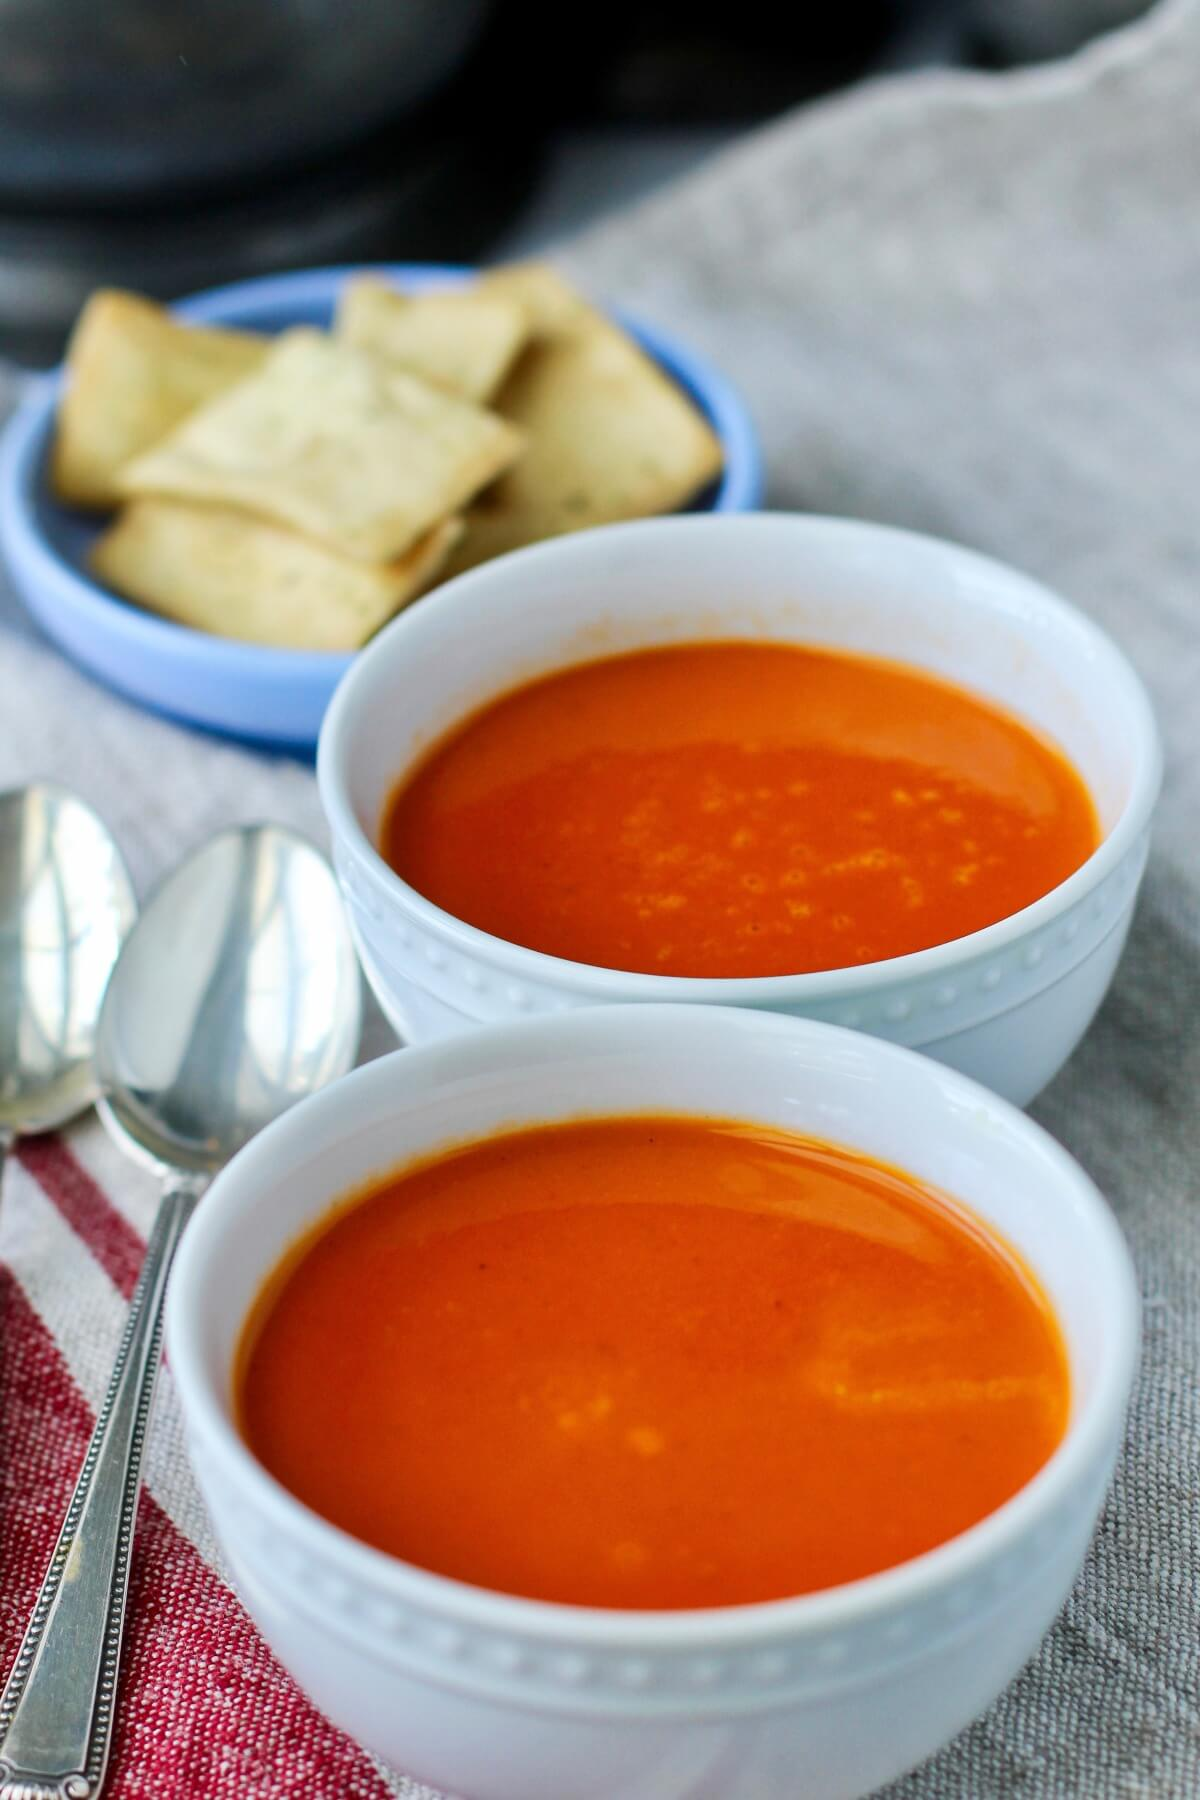 Roasted Tomato and Pepper Soup with pita chips